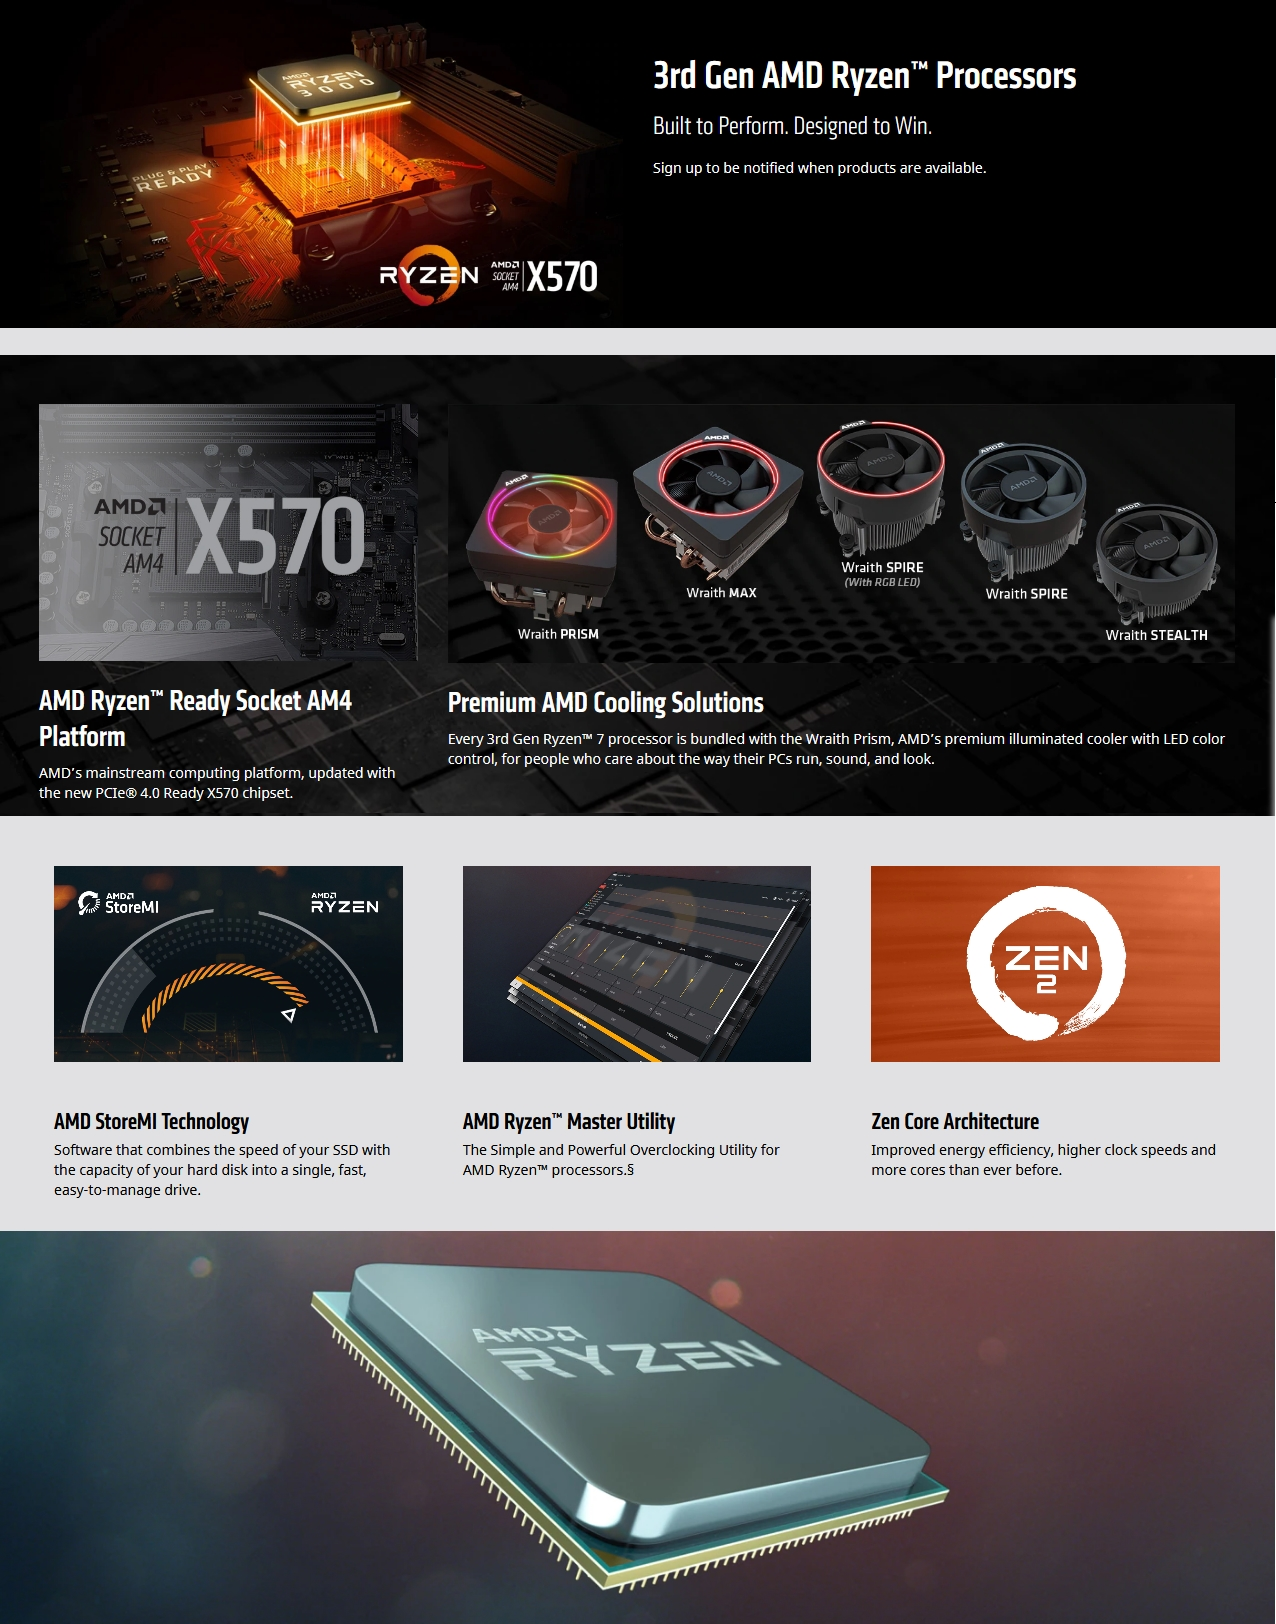 A large marketing image providing additional information about the product AMD Ryzen 7 3700X 3.6Ghz 8 Core 16 Thread AM4 Retail Box - With Wraith Prism RGB Cooler - Additional alt info not provided